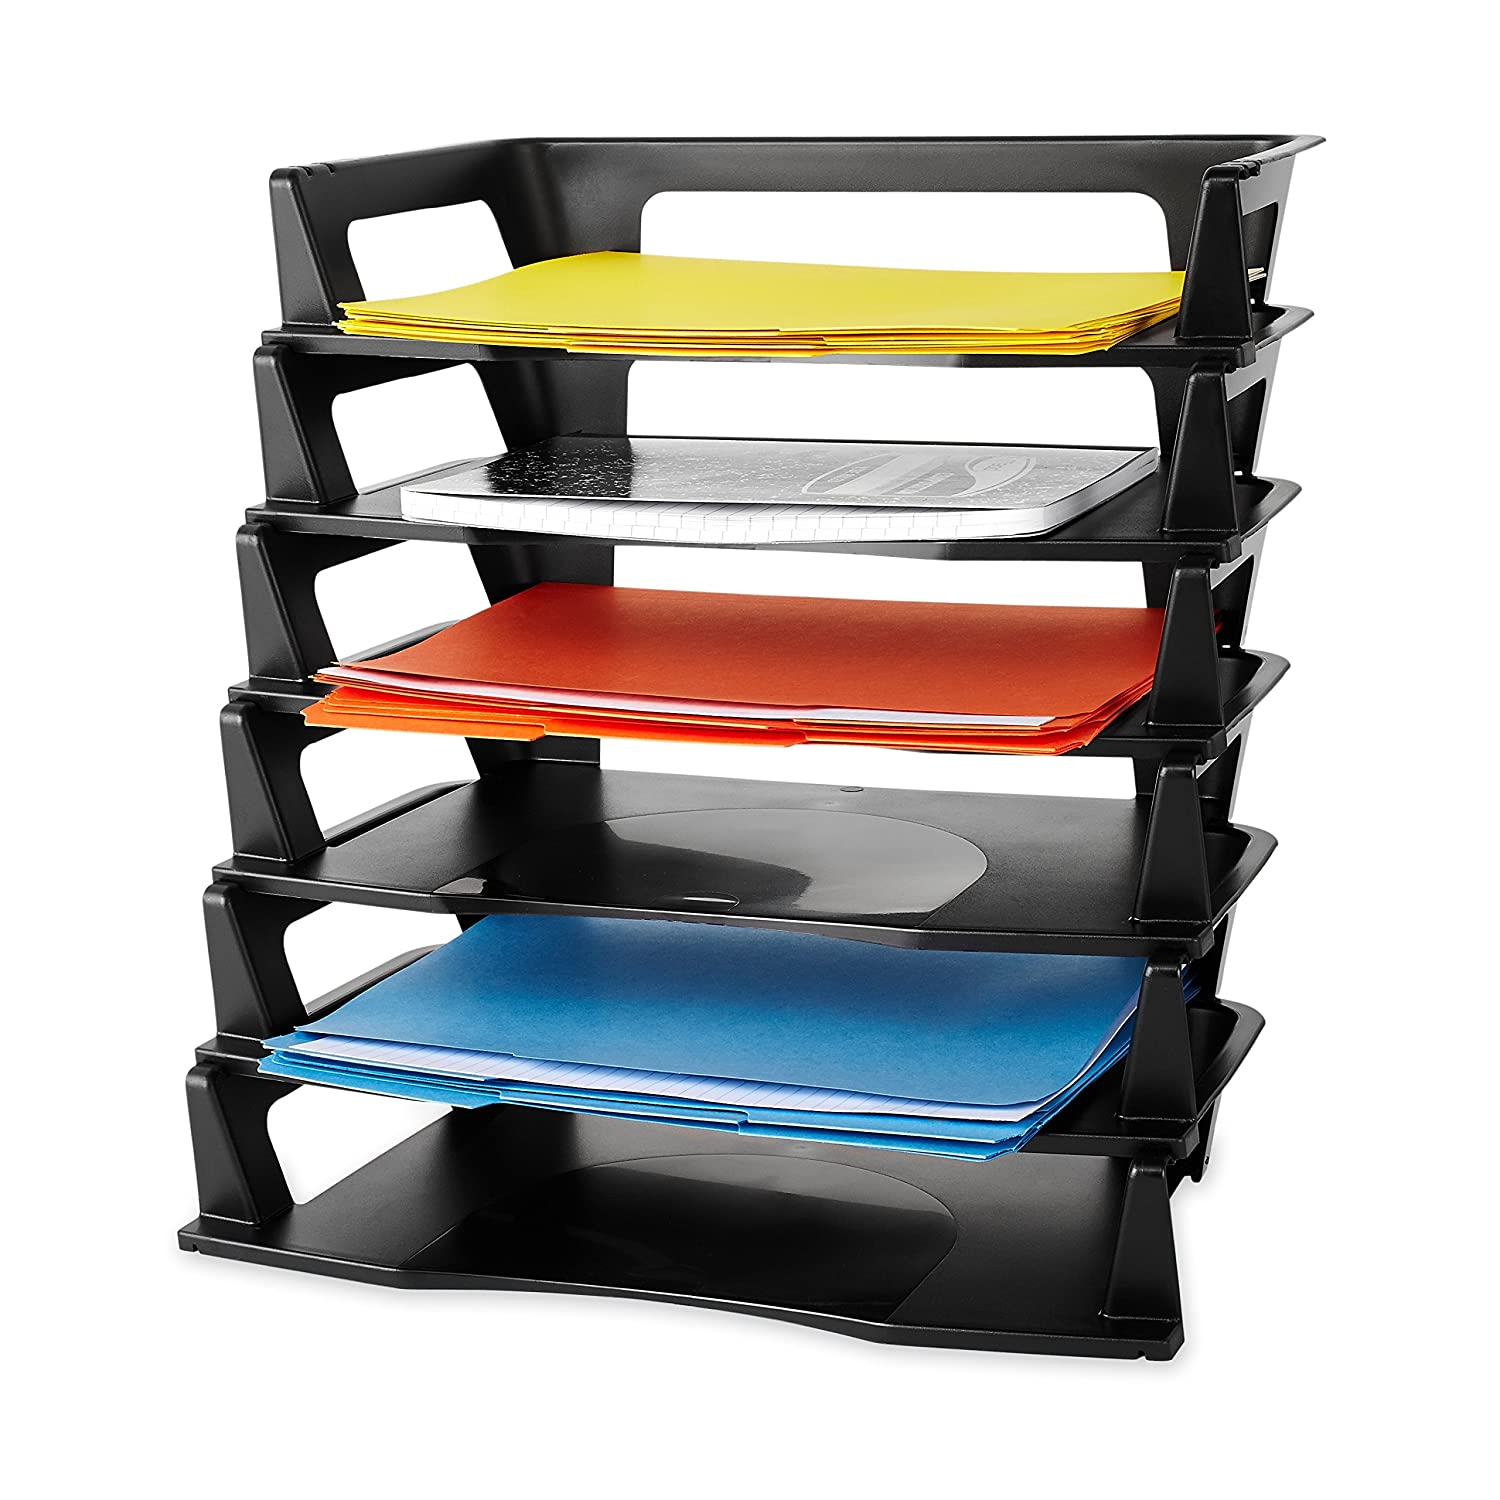 Attrayant Amazon.com : Rubbermaid Regeneration Letter Tray, Six Tier, Plastic, Black  (86028) : Office Desk Trays : Office Products